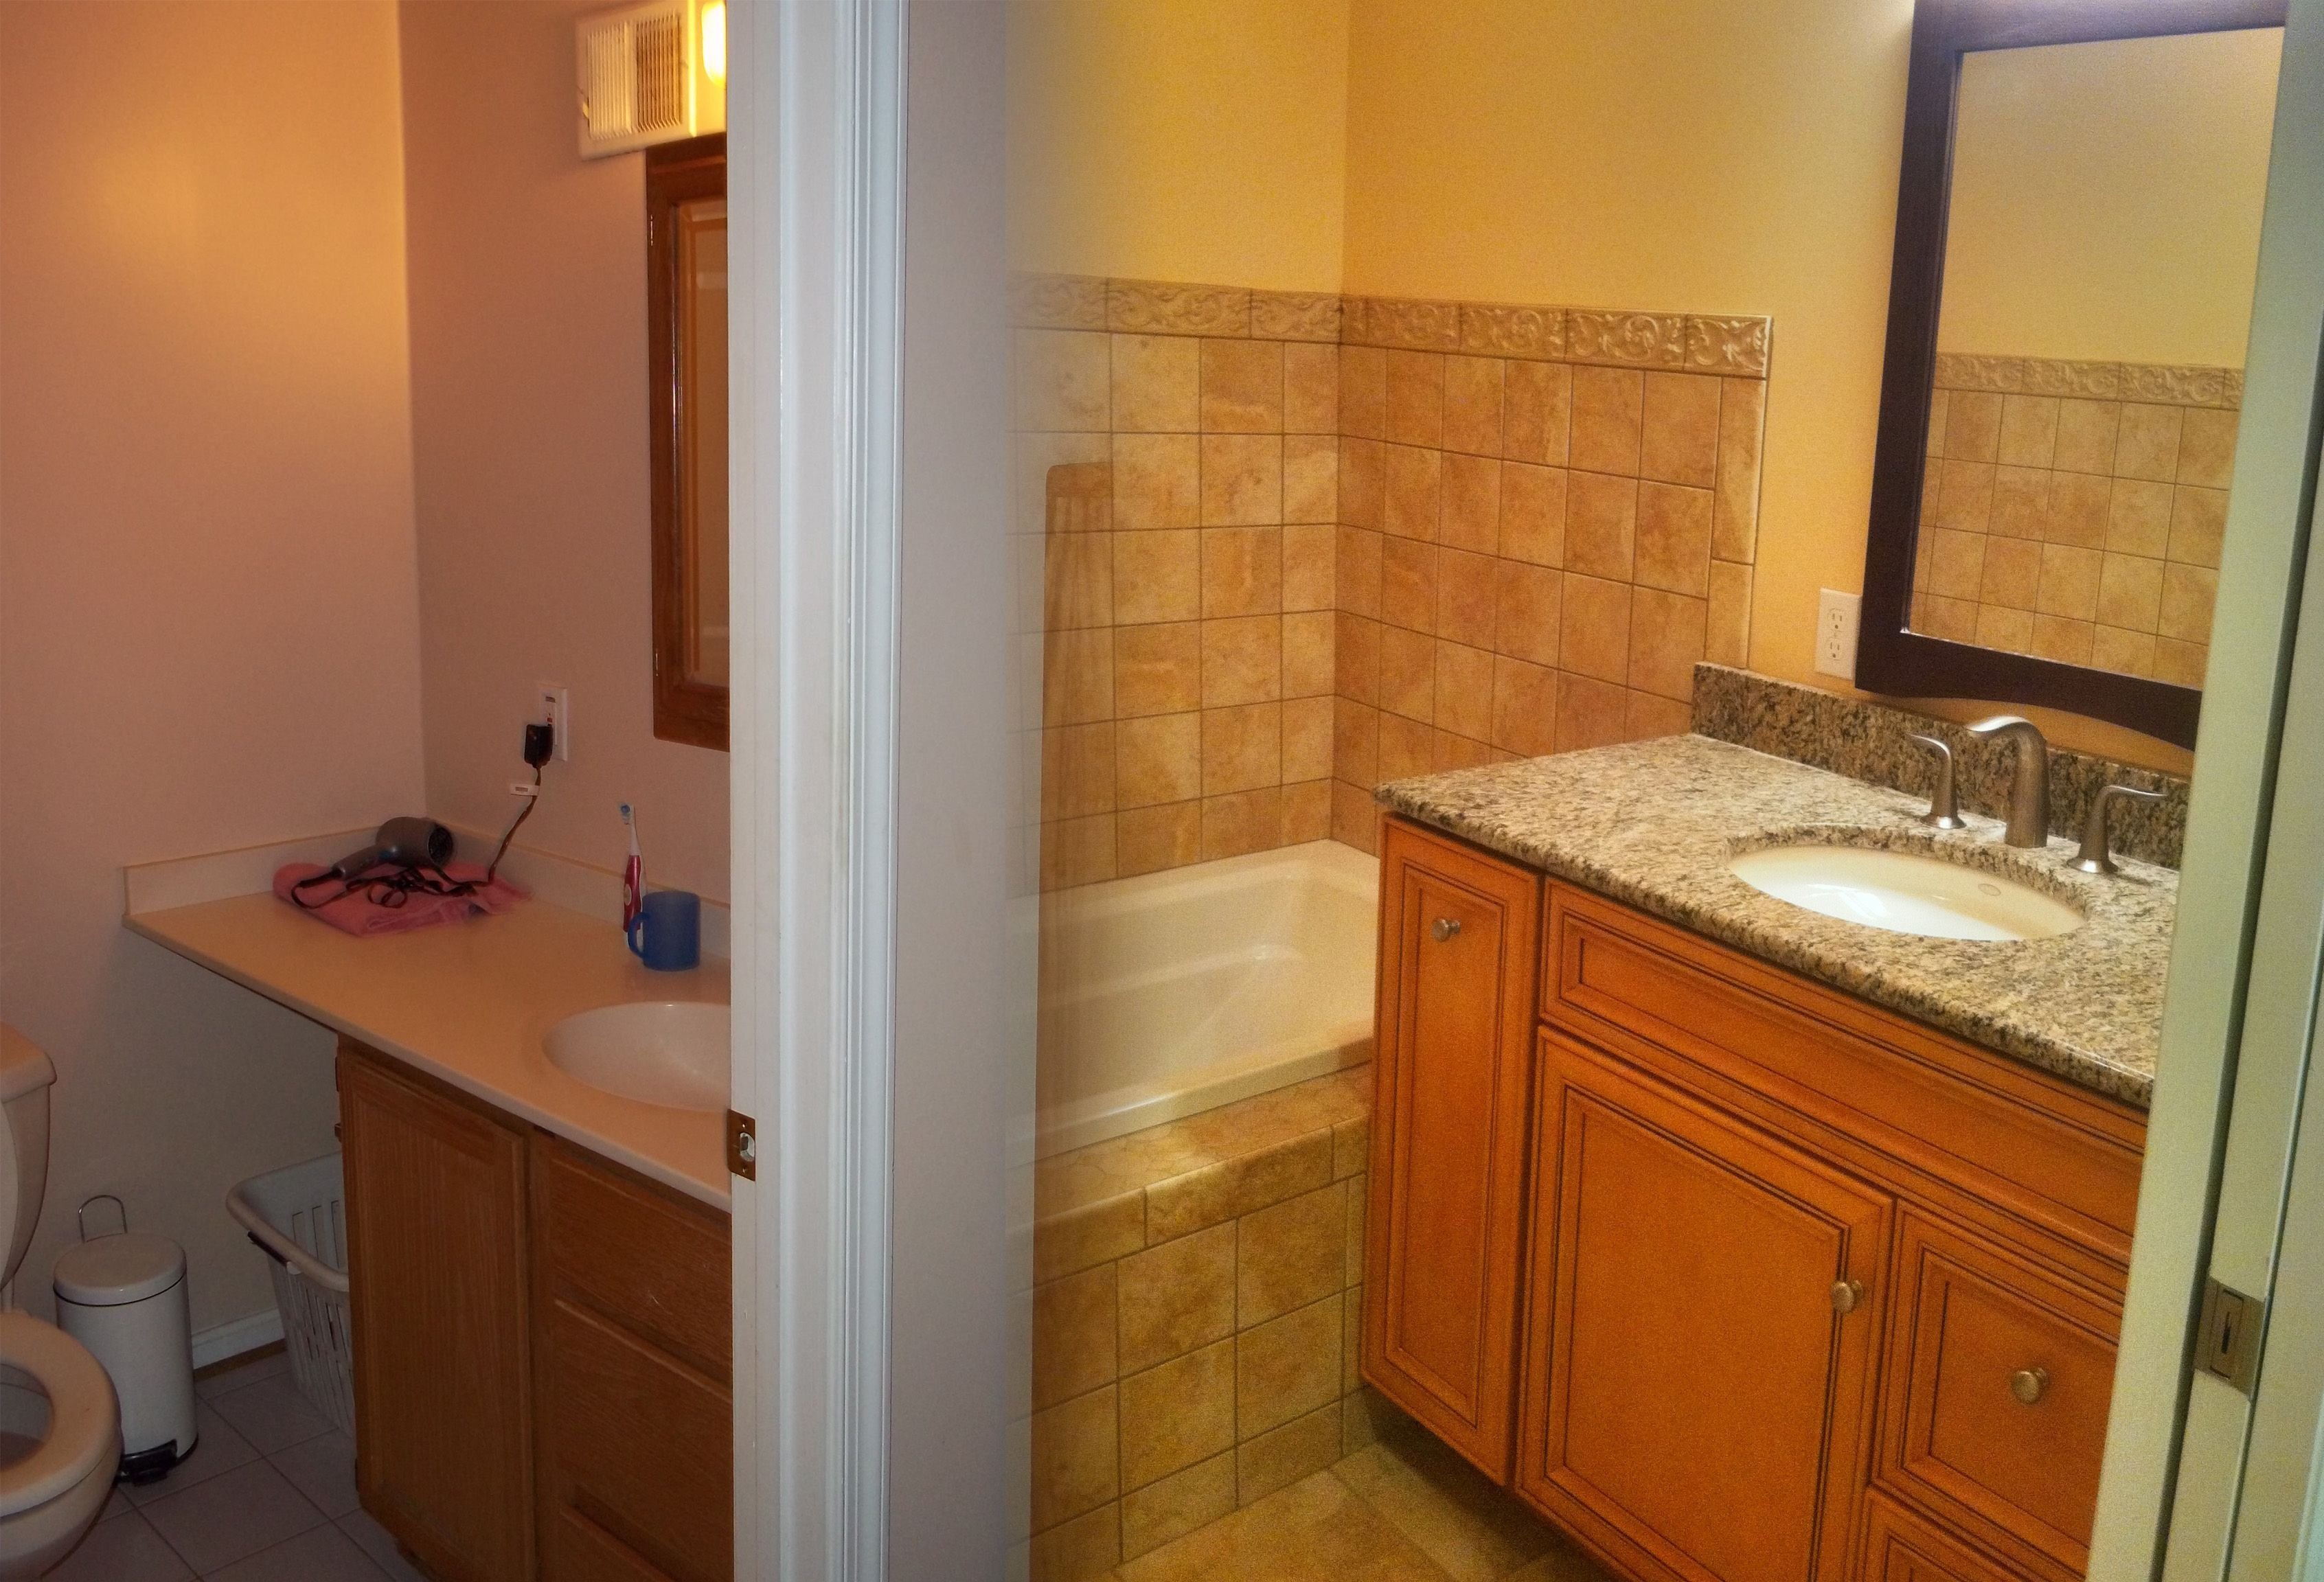 Bathroom Remodel Photos Before And After   Particularly as it pertains to  the resale value of a property a toilet is most lik. 1960s bathroom renovation before and after           Bathroom